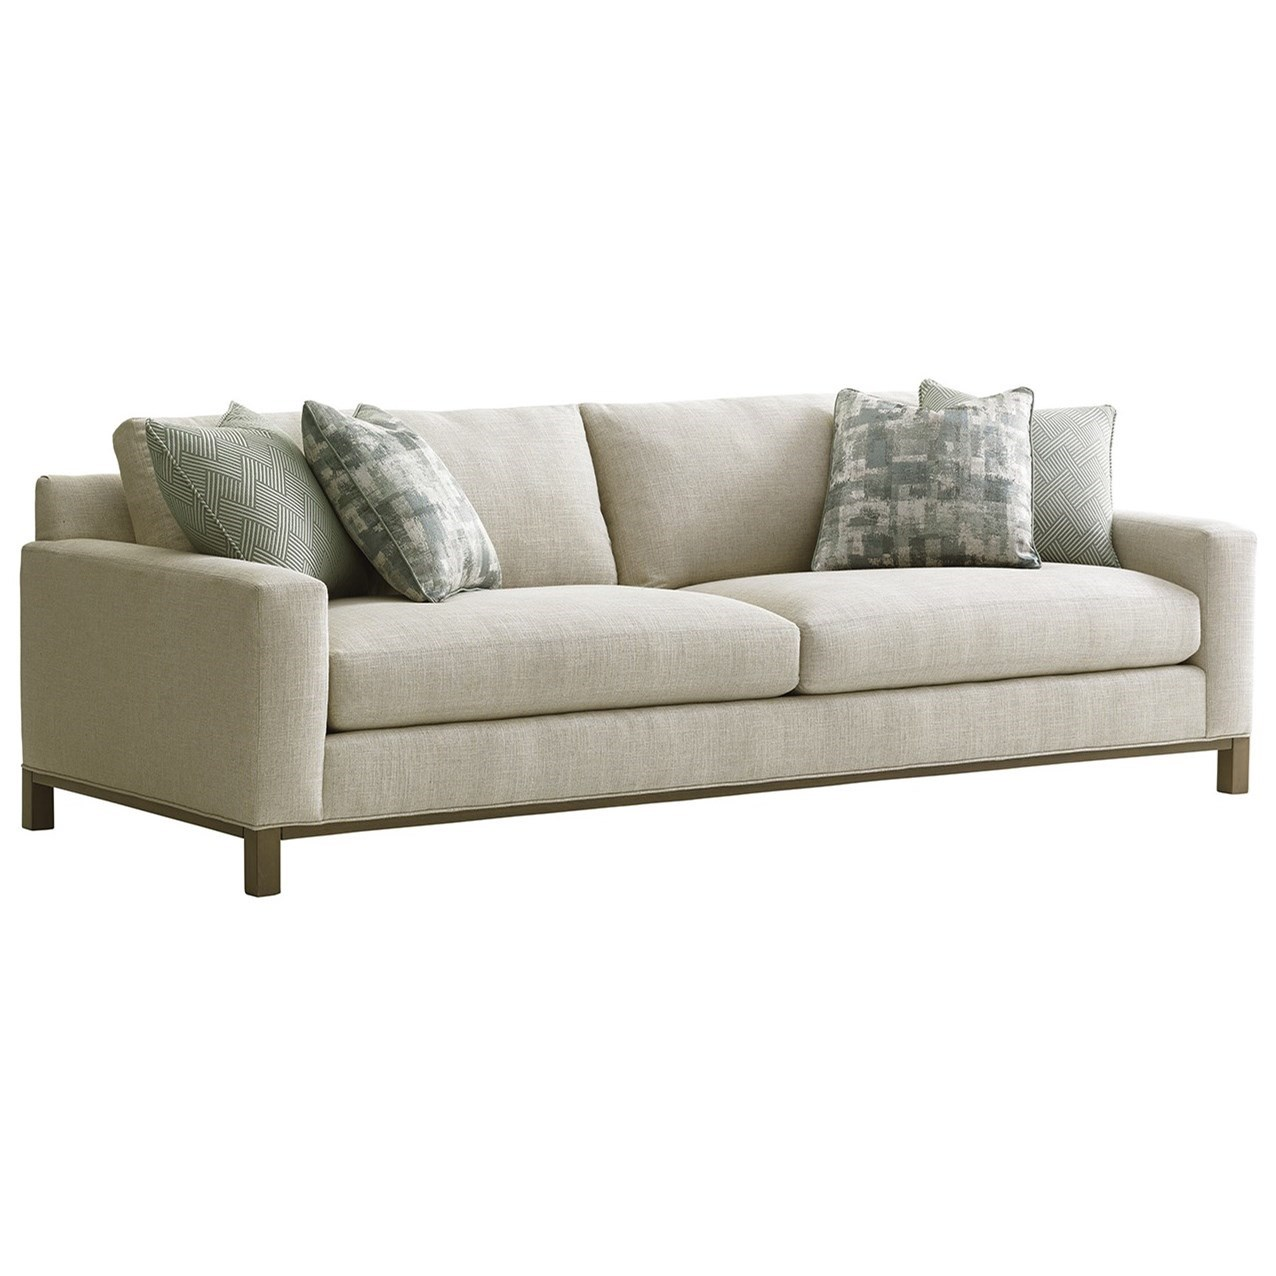 Lexington Upholstery Chronicle Sofa by Lexington at Johnny Janosik